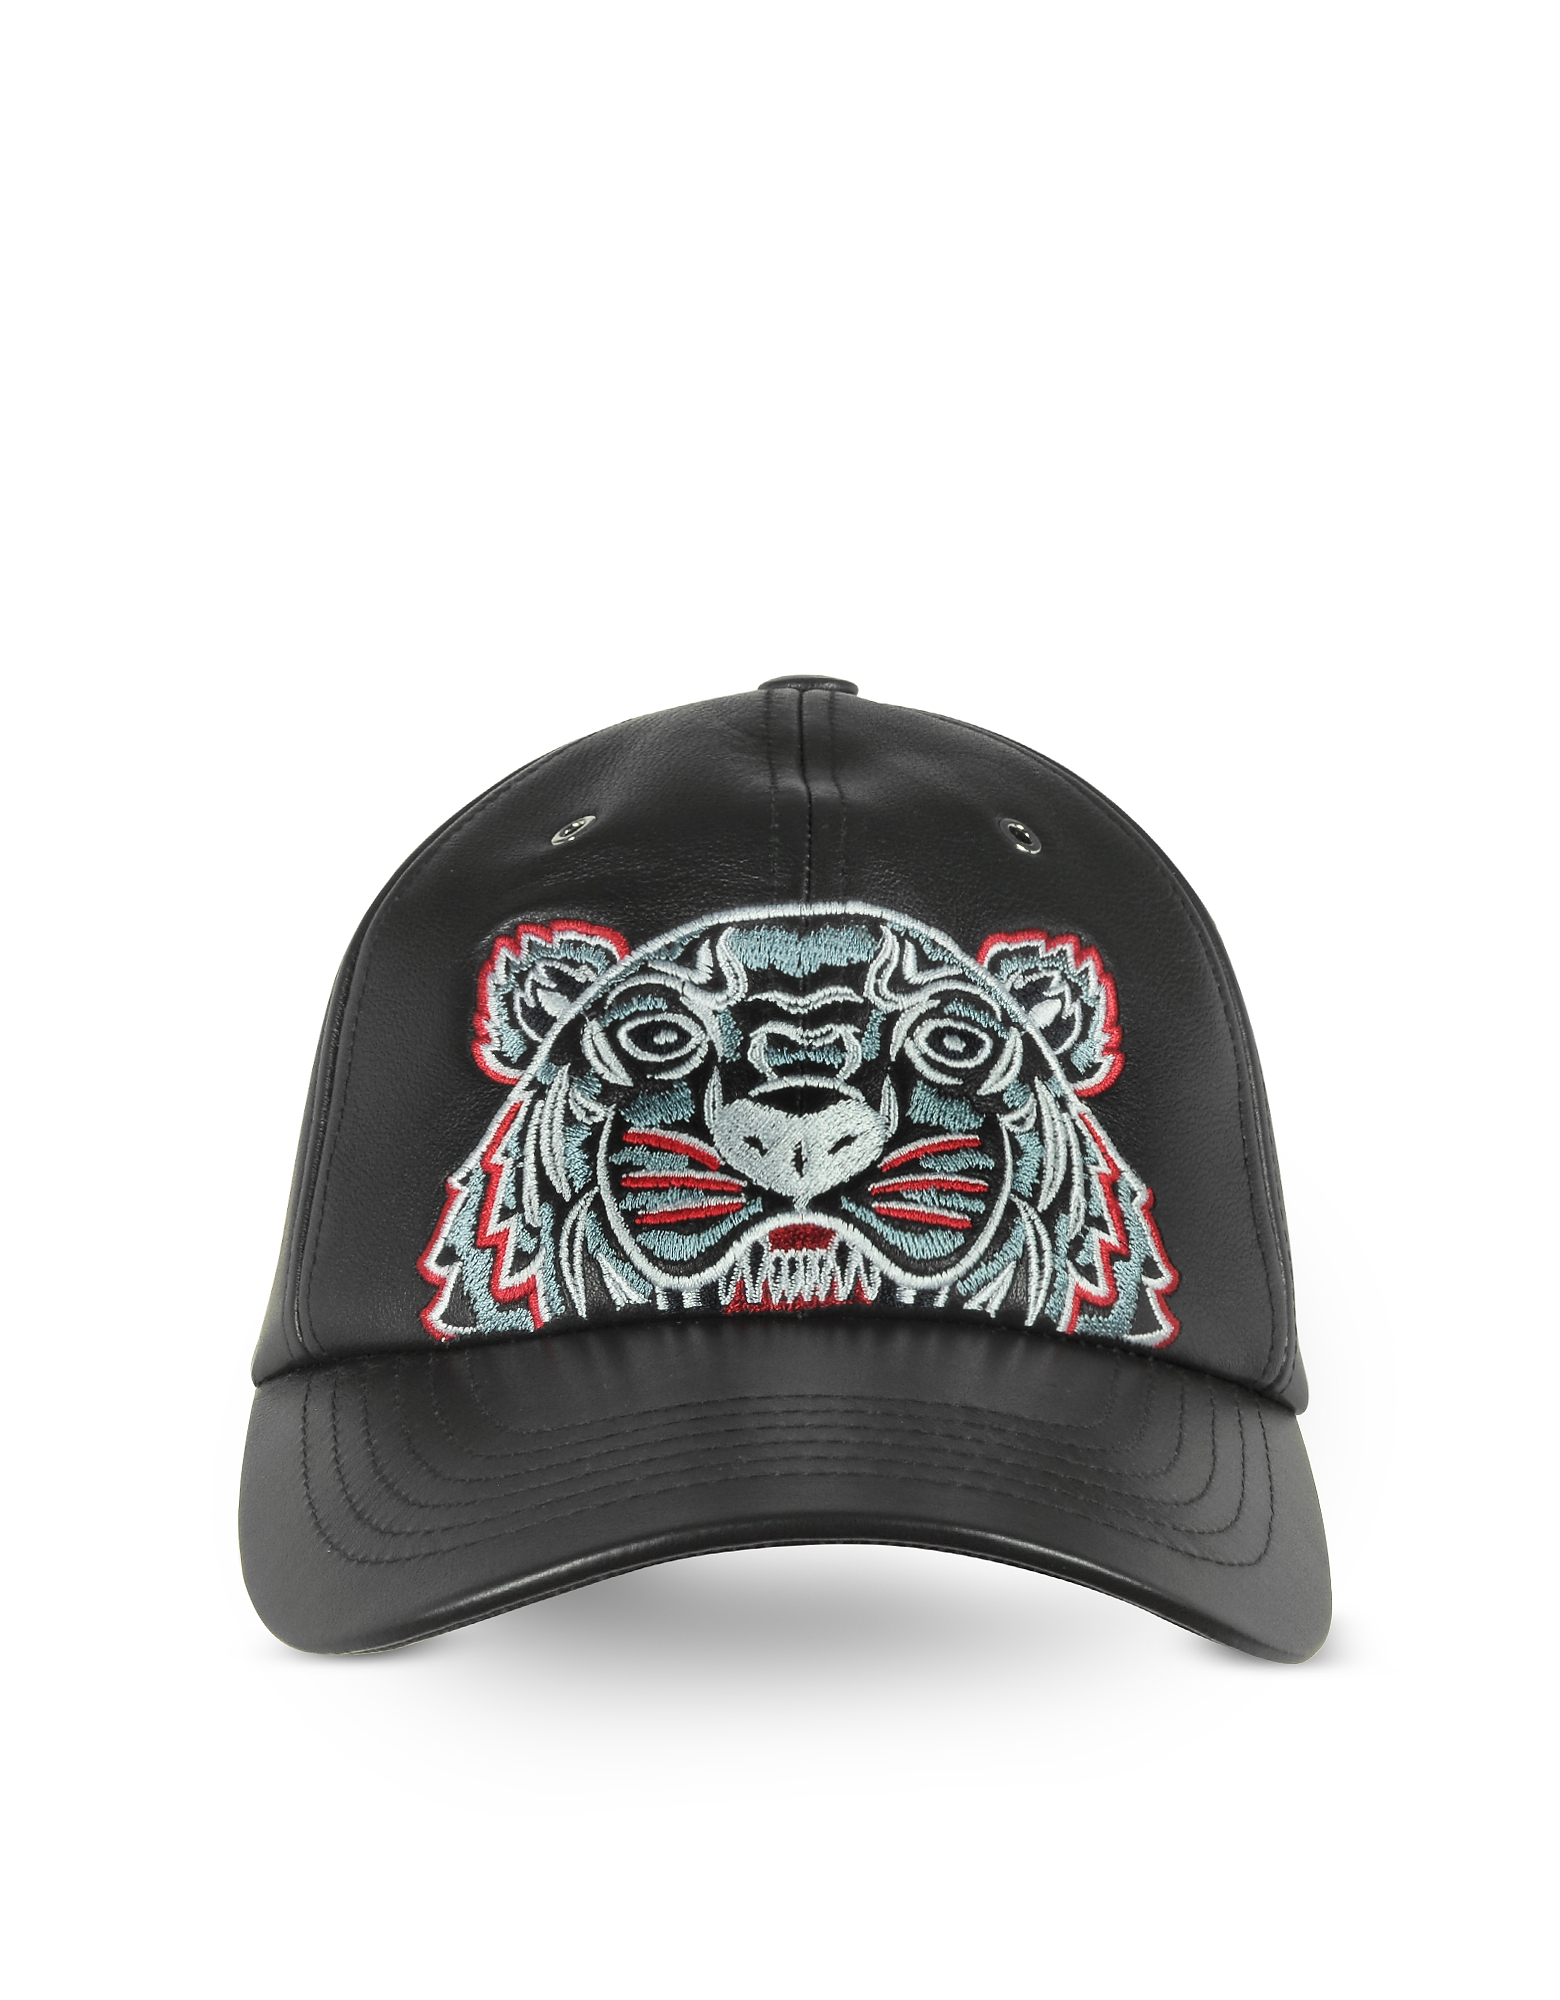 Kenzo Designer Men's Hats, Black Leather Tiger Baseball Cap